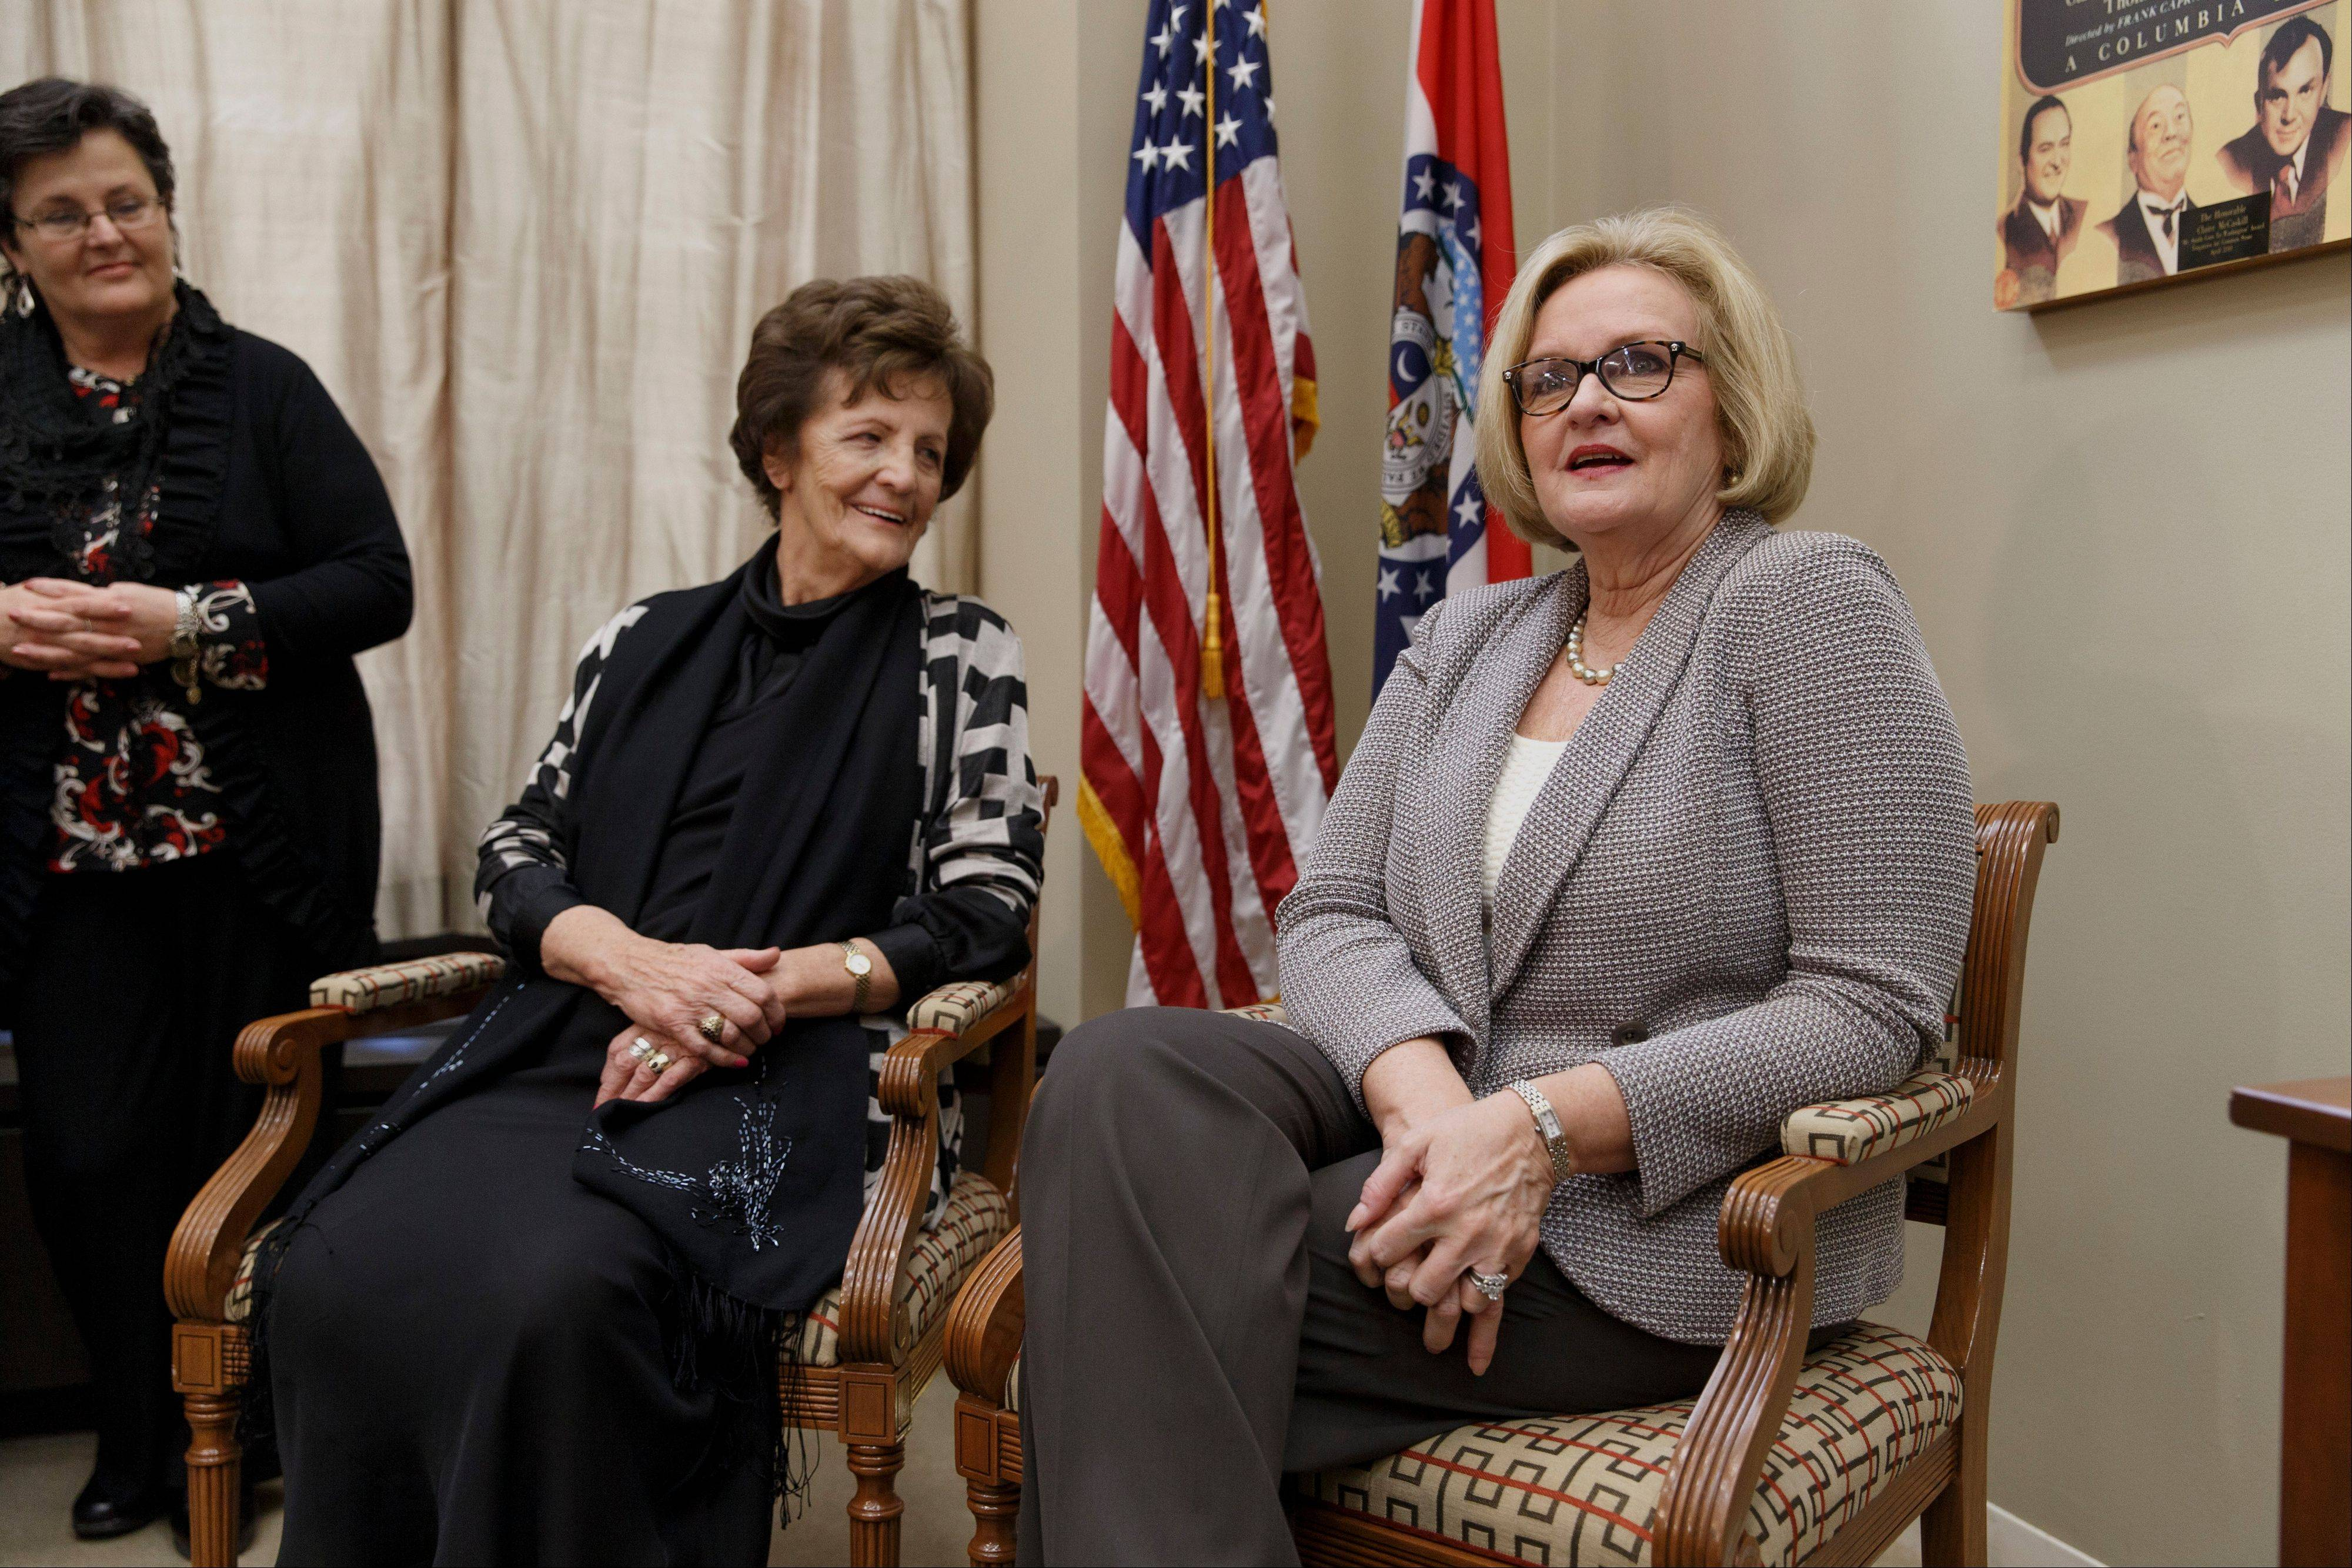 With her life story now the subject of an Oscar-nominated film, Philomena Lee is calling for government reforms in Ireland that would grant adopted people access to their adoption files. She met with Sen. Claire McCaskill, D-Mo., right, on Capitol Hill in Washington Thursday.